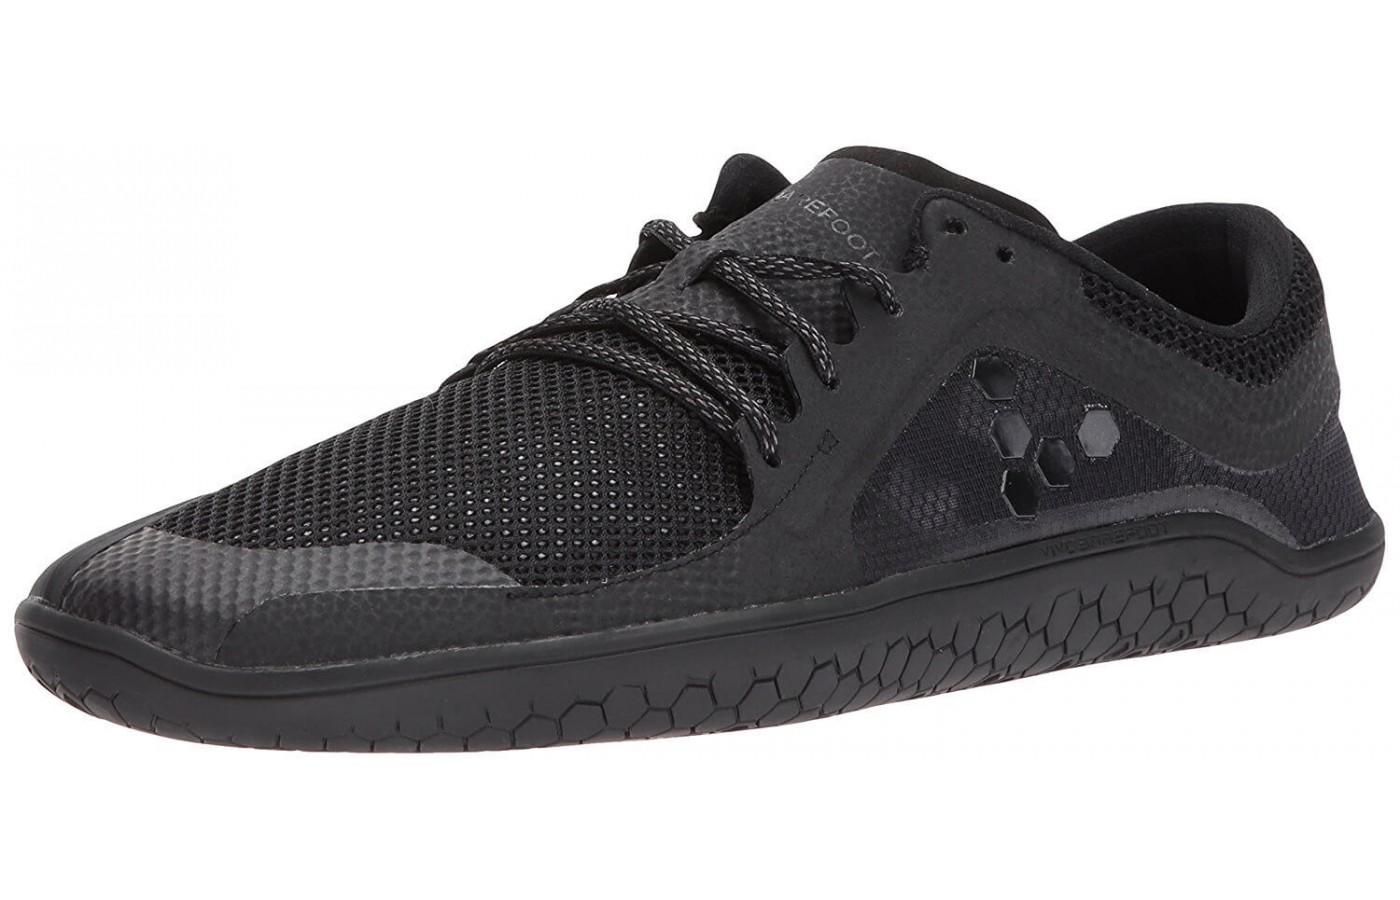 The Vivobarefoot Primus Lite offers an excellent minimalist design.